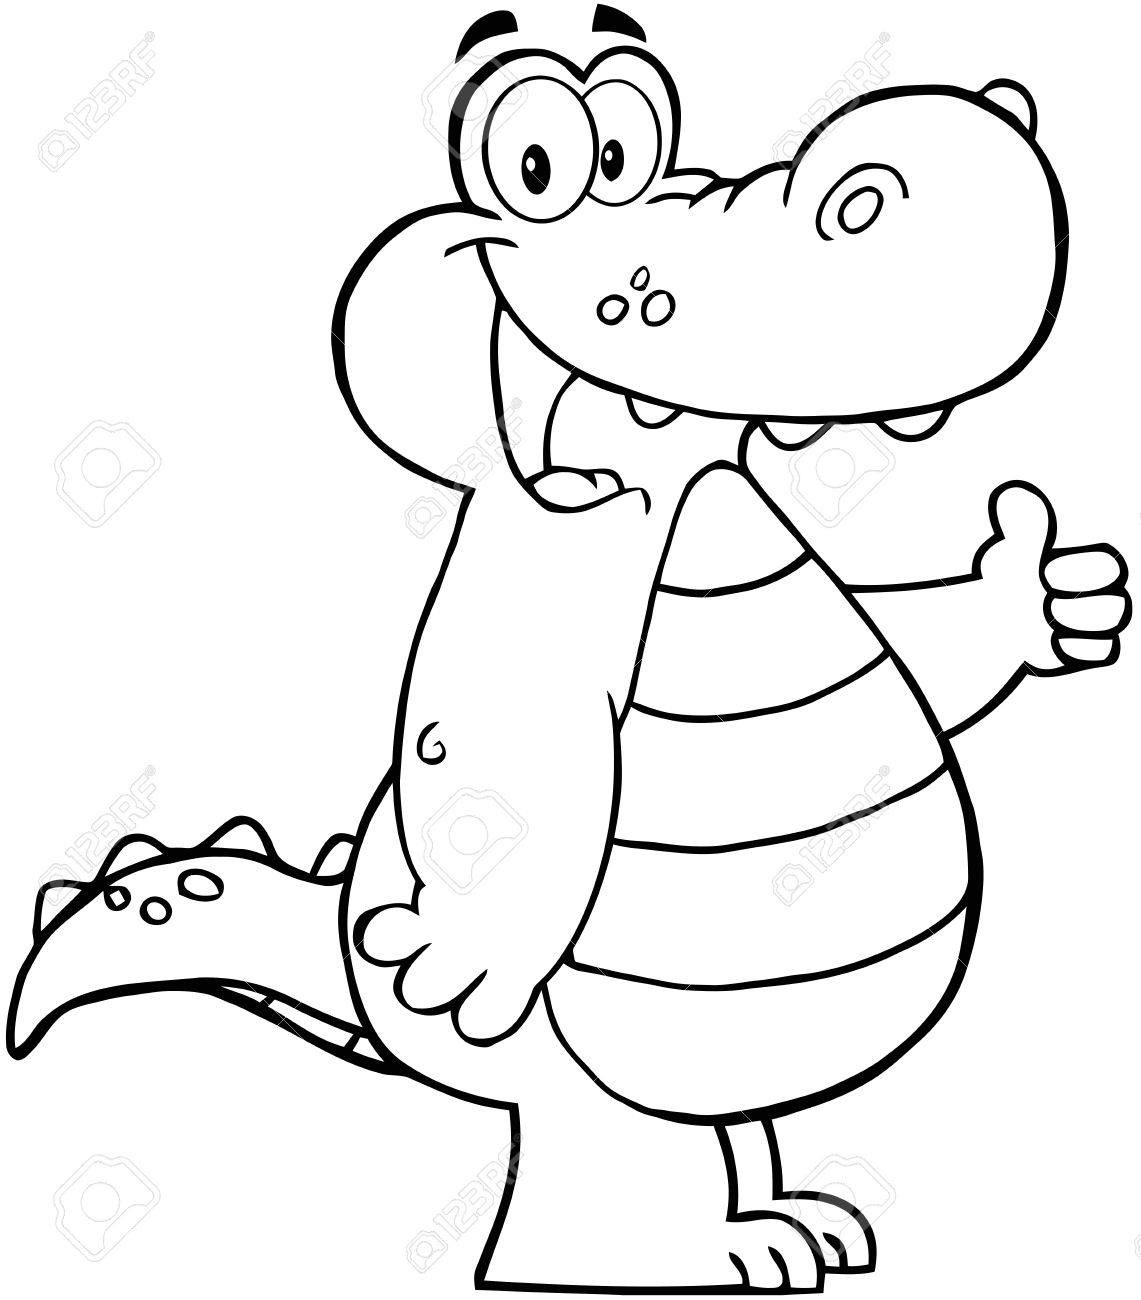 Outlined Smiling Aligator Or Crocodile Showing Thumbs Up Royalty